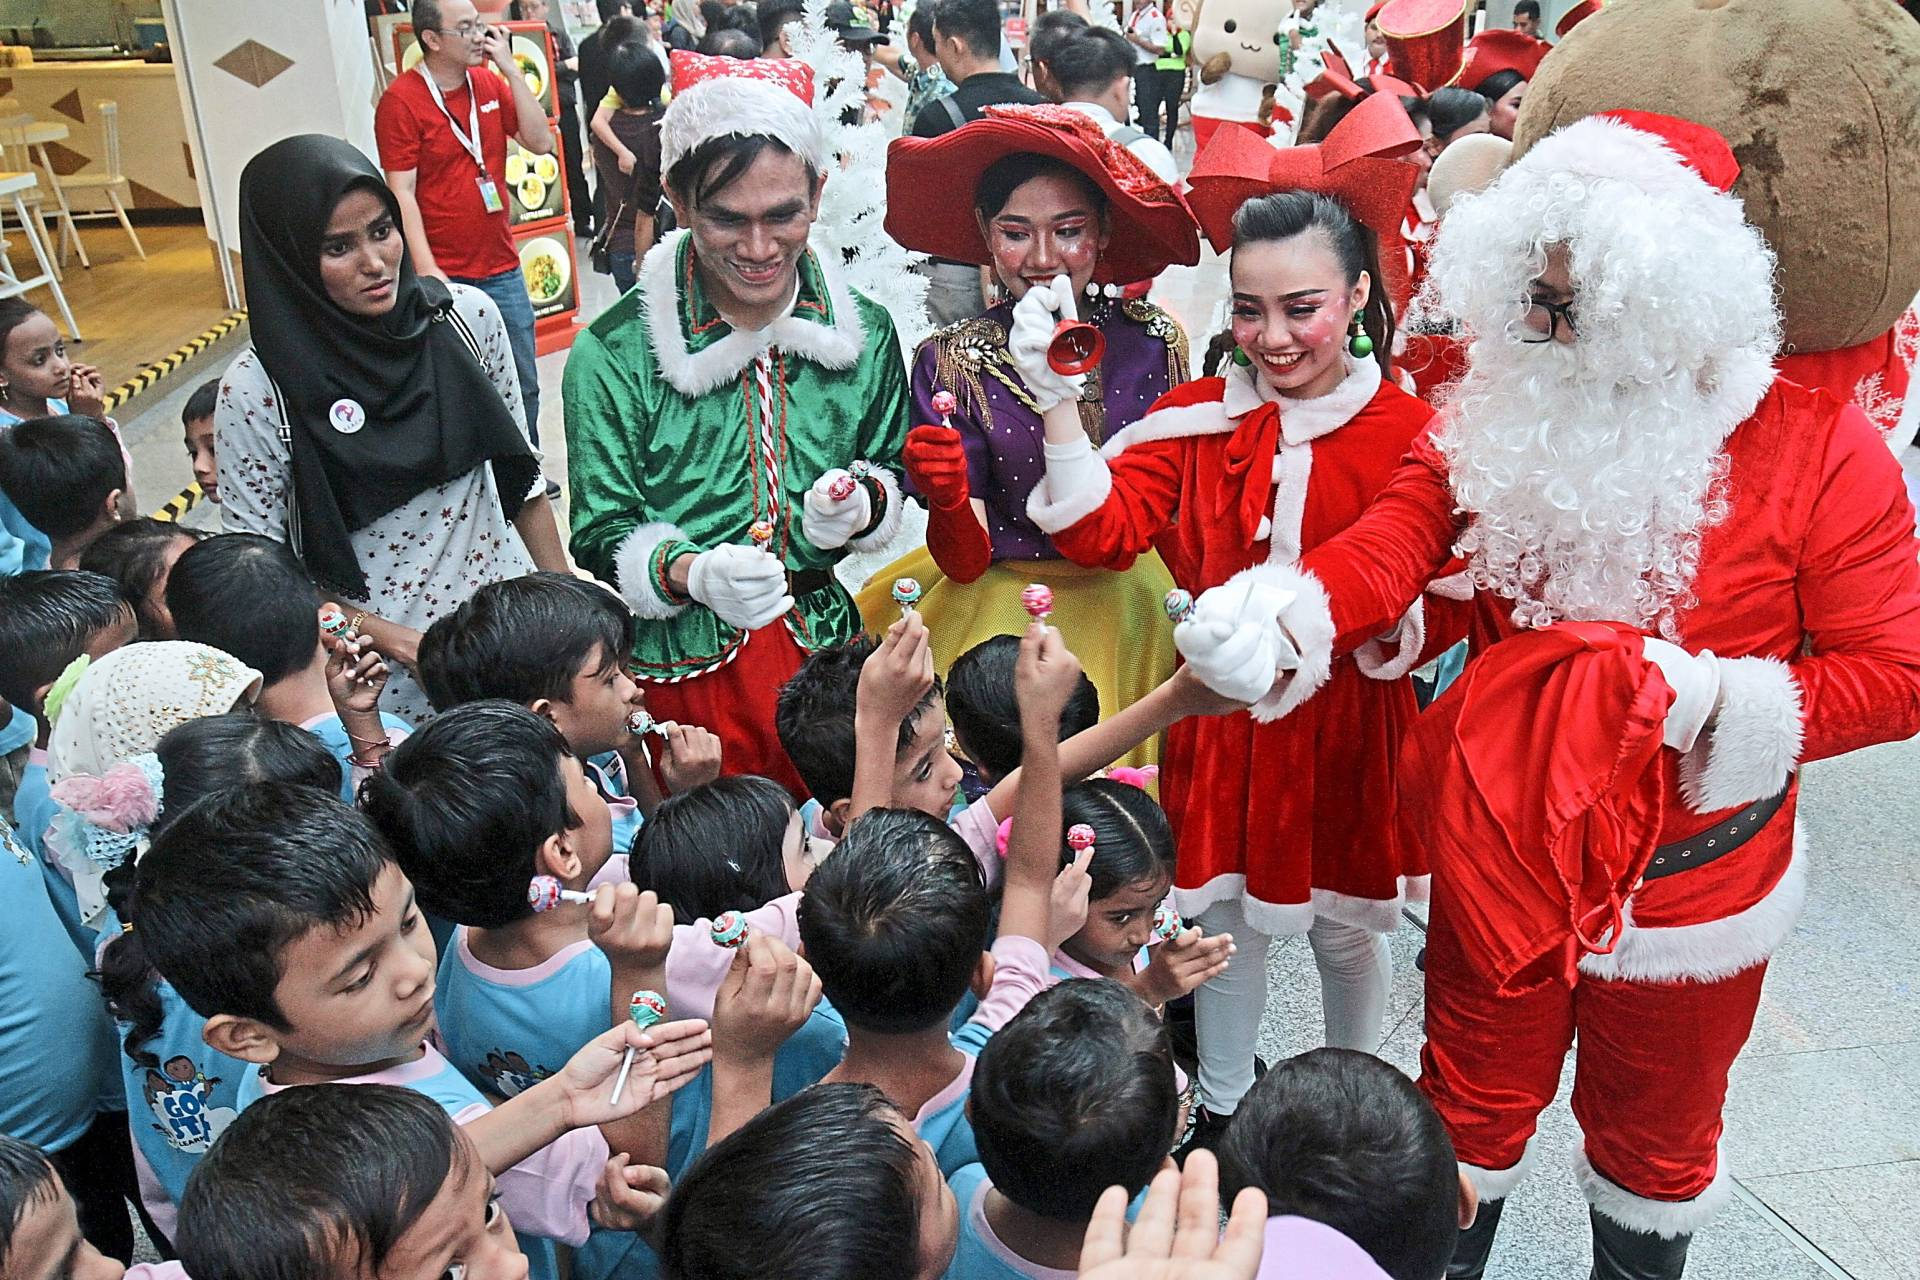 Santa Claus and Santarina distributing lollipops to the kids.